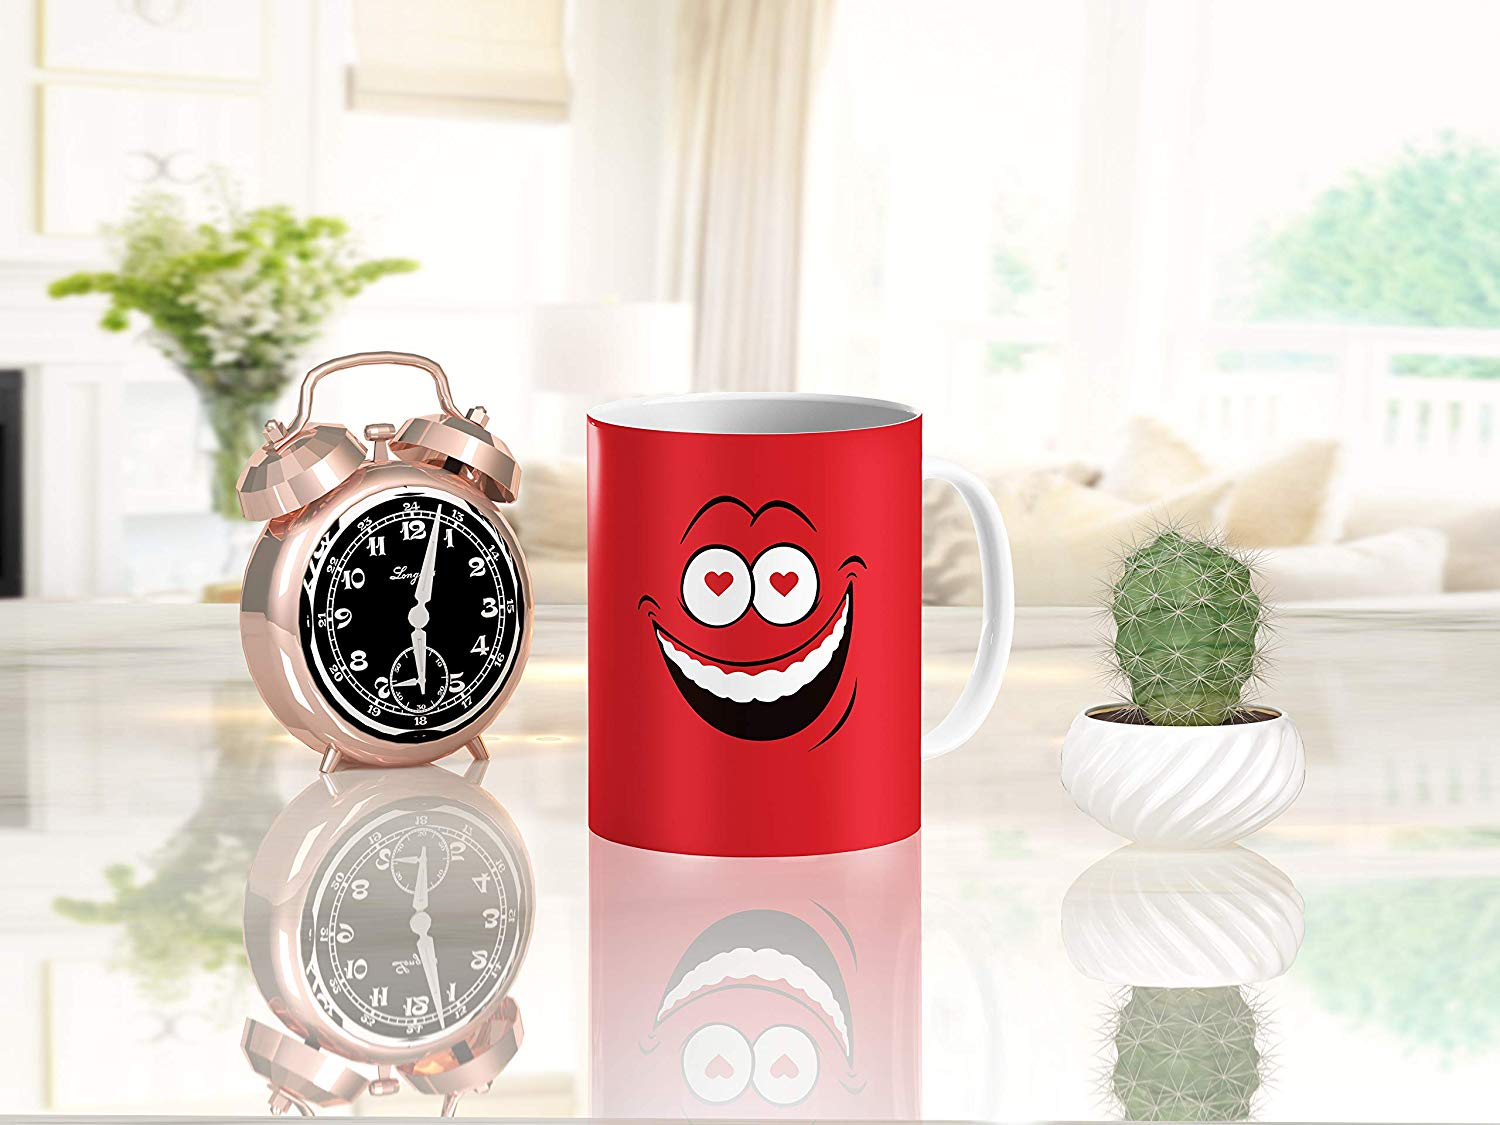 Heat Sensitive Color Changing Coffee Mug Funny Coffee Cup Red Loved Funny Face Design Funny Gift Idea B079FRF6YM 7